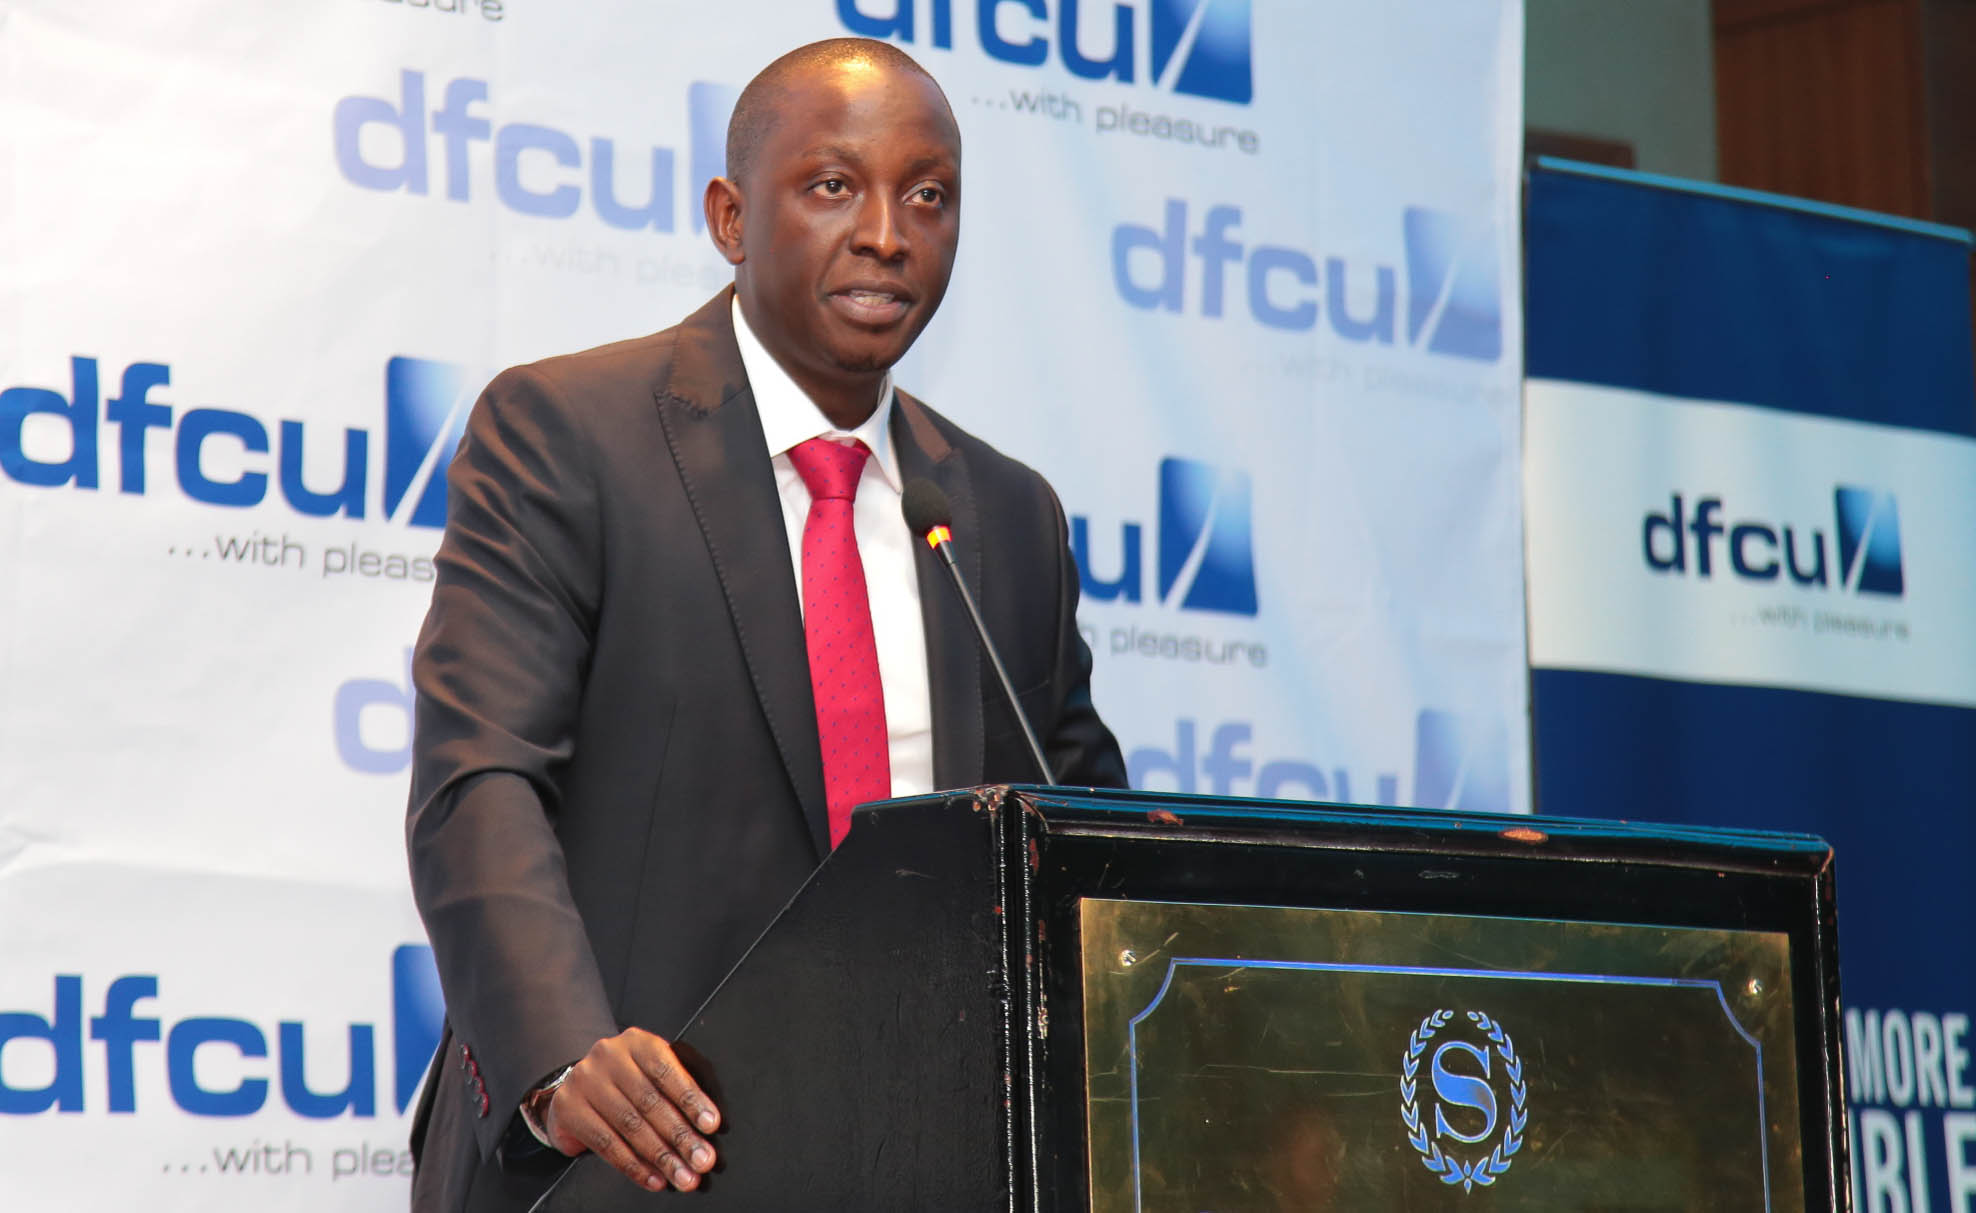 William Sekabembe dfcu Bank's Chief of Business. Courtesy photo.